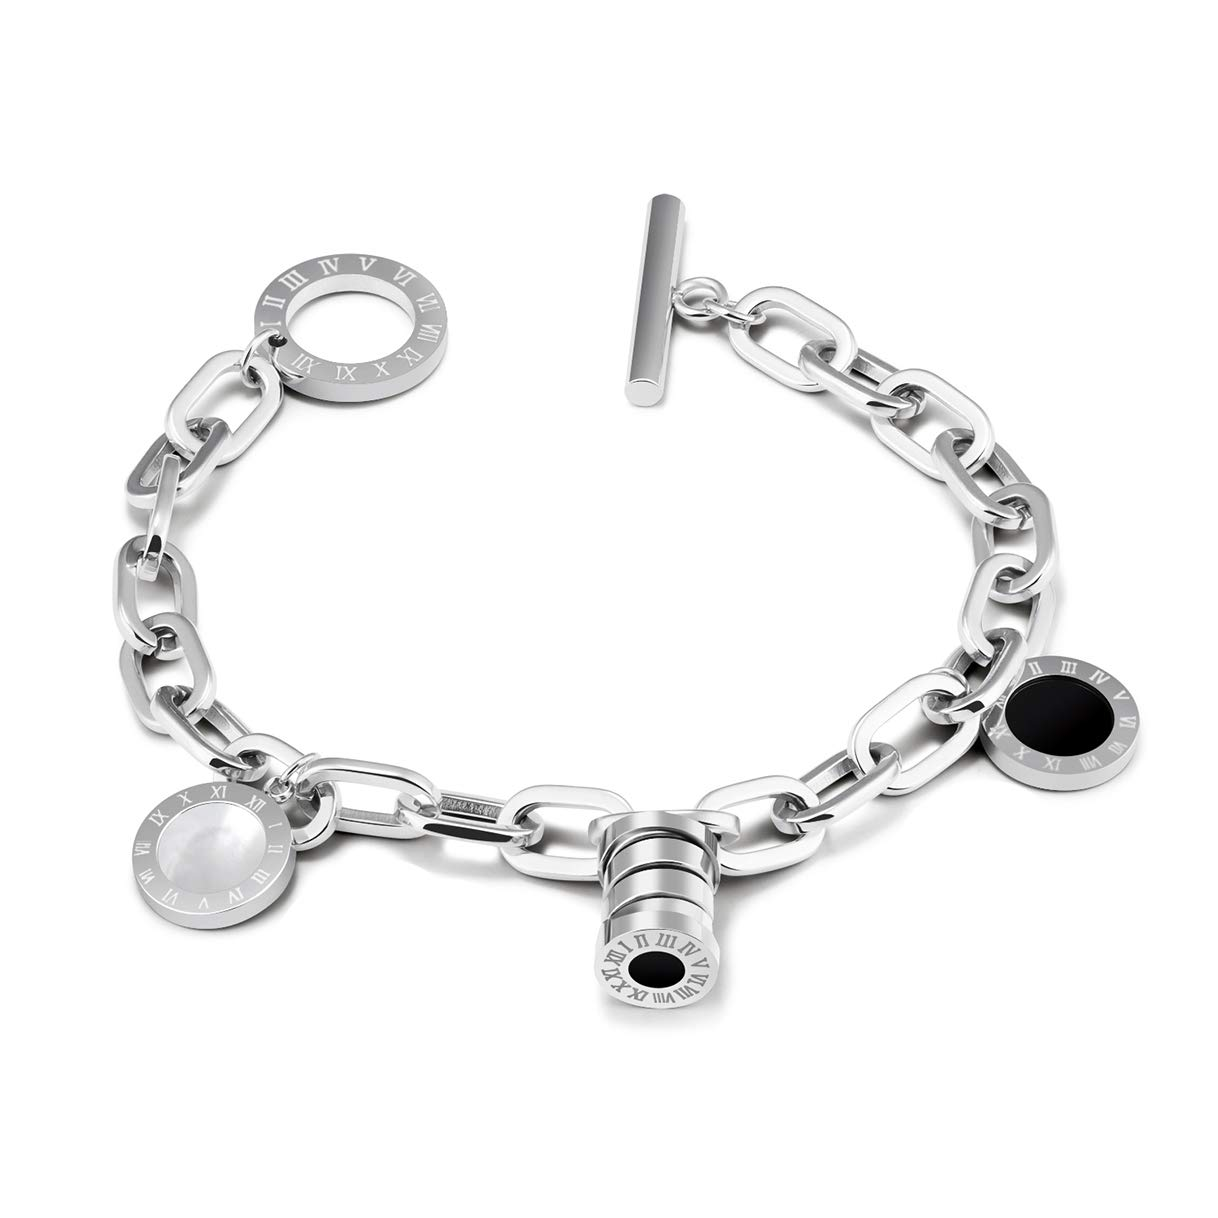 CHARMFAME Stainless Steel Roman Numeral Link Bracelet with Black /& White Charms Fashion Jewelry for Women /& Girls